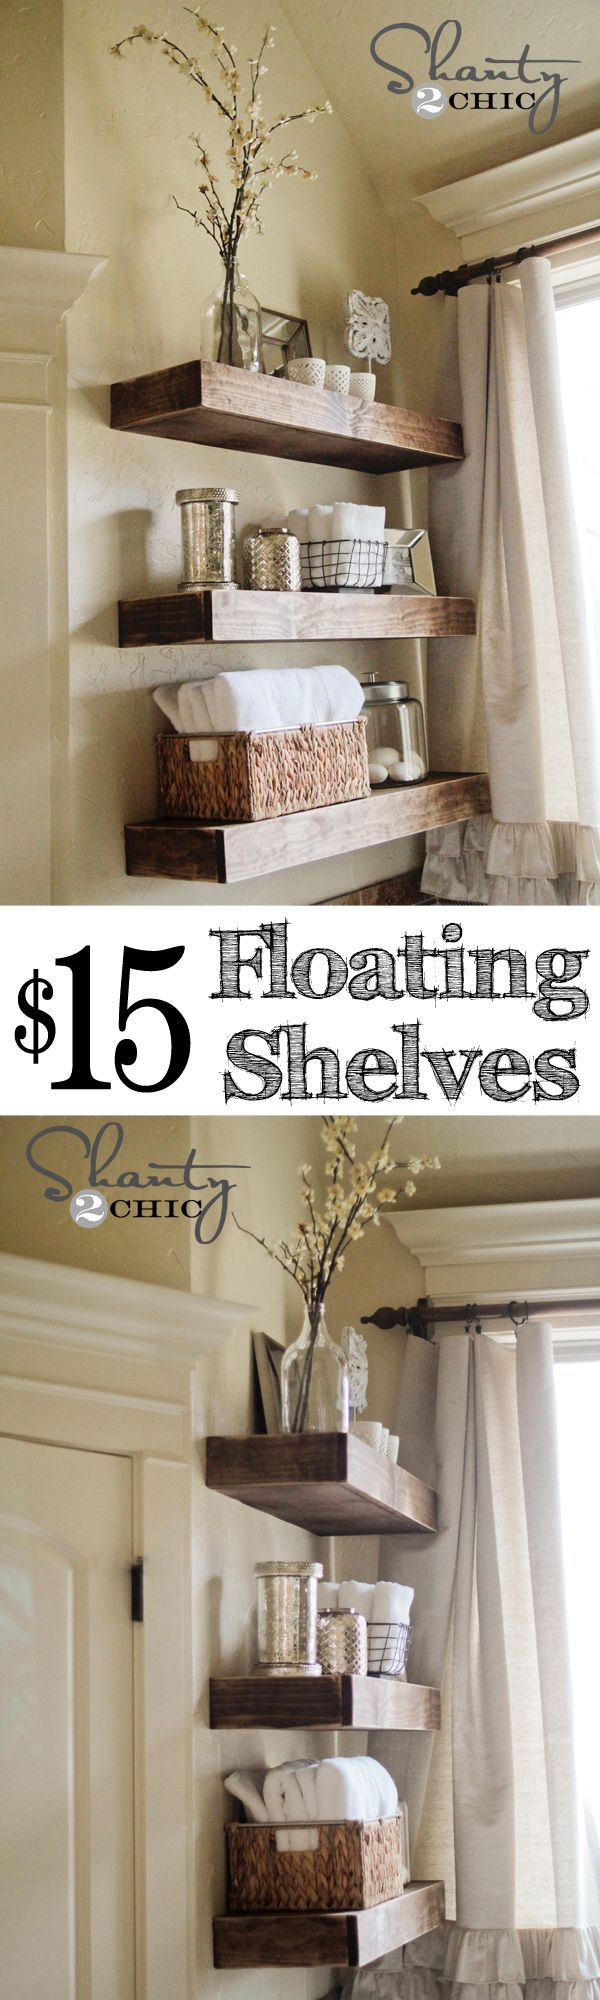 Easy DIY Floating Shelves   Floating Shelf Tutorial Video U0026 Free Plans